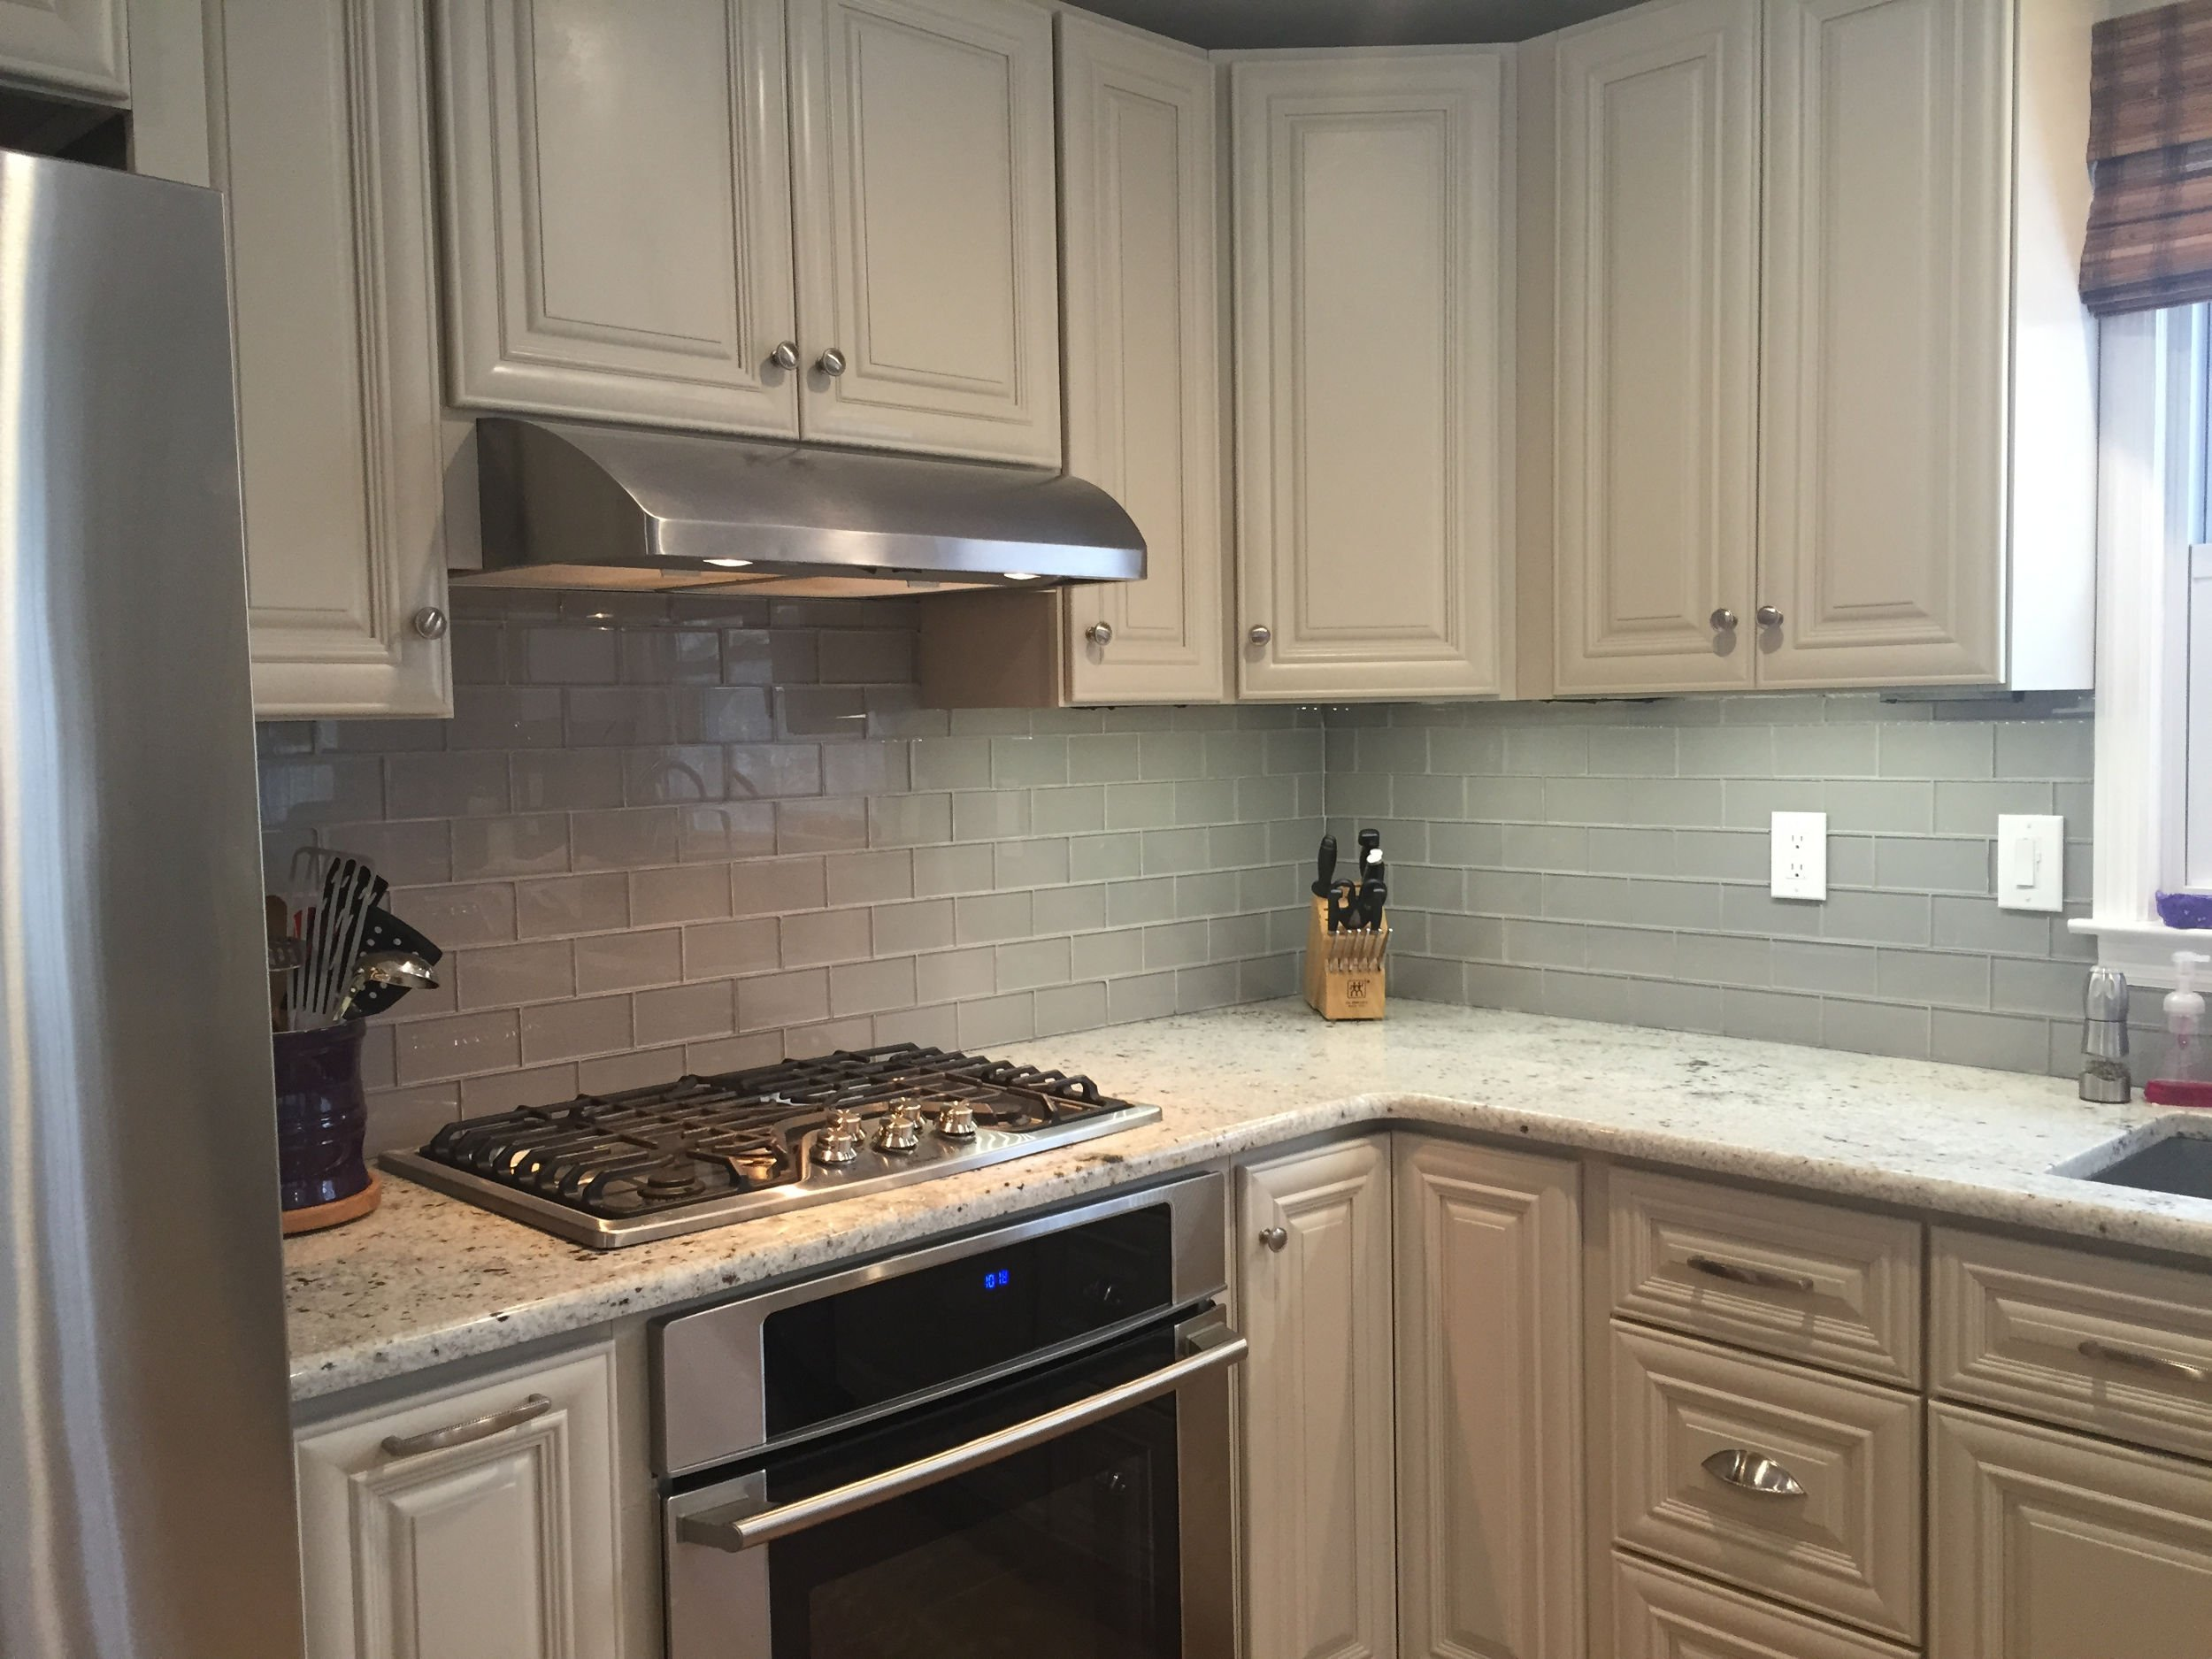 Gray kitchen backsplash. & 75 Kitchen Backsplash Ideas for 2018 (Tile Glass Metal etc.)